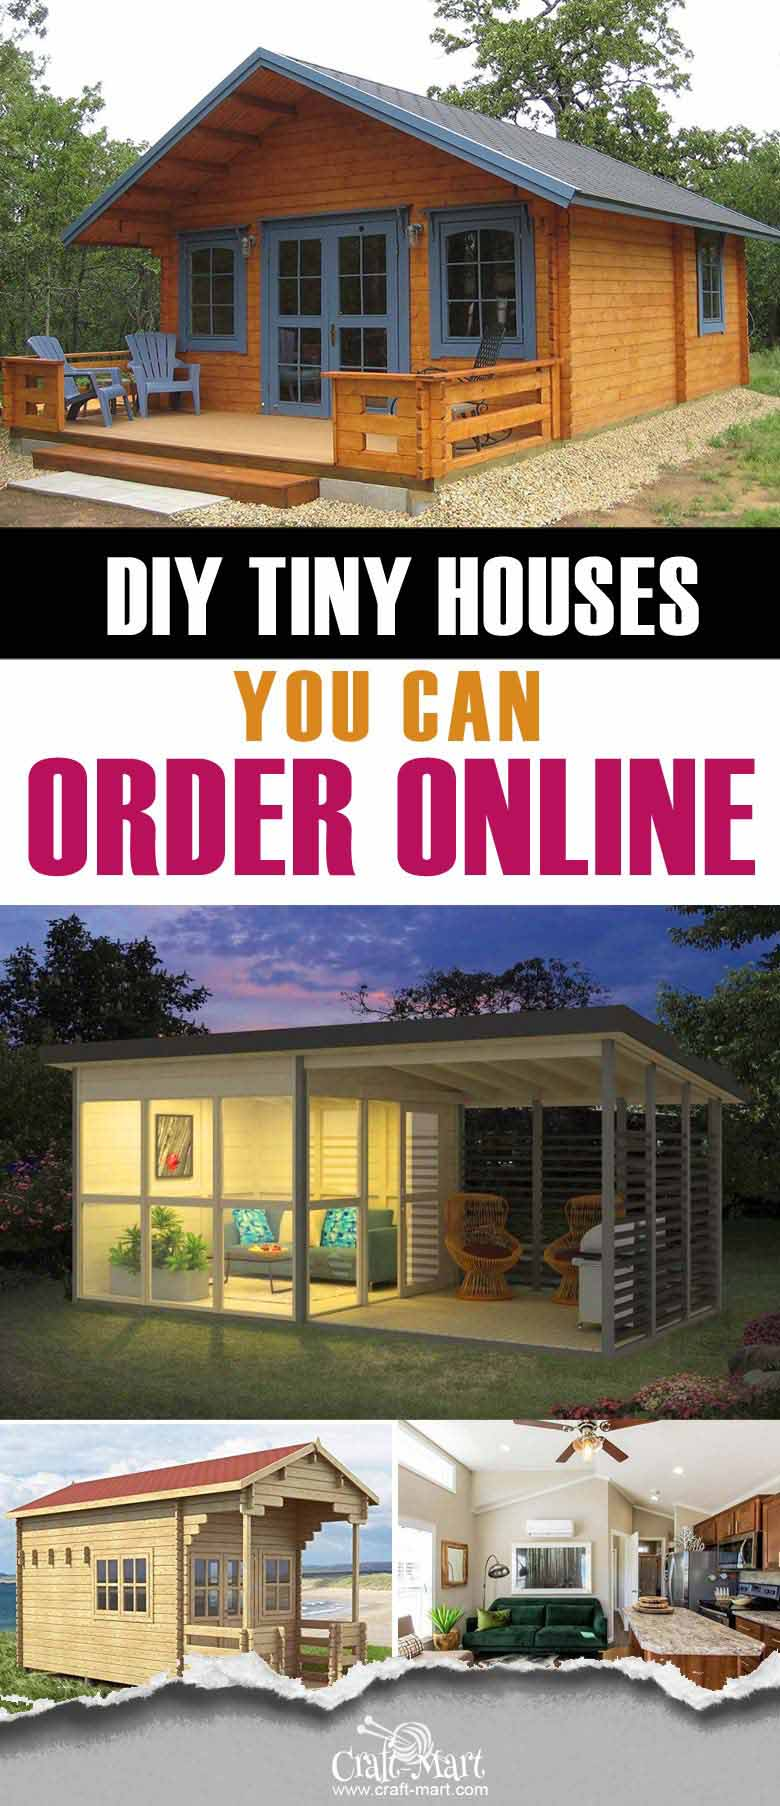 Affordable prefab tiny houses that you can order from Amazon